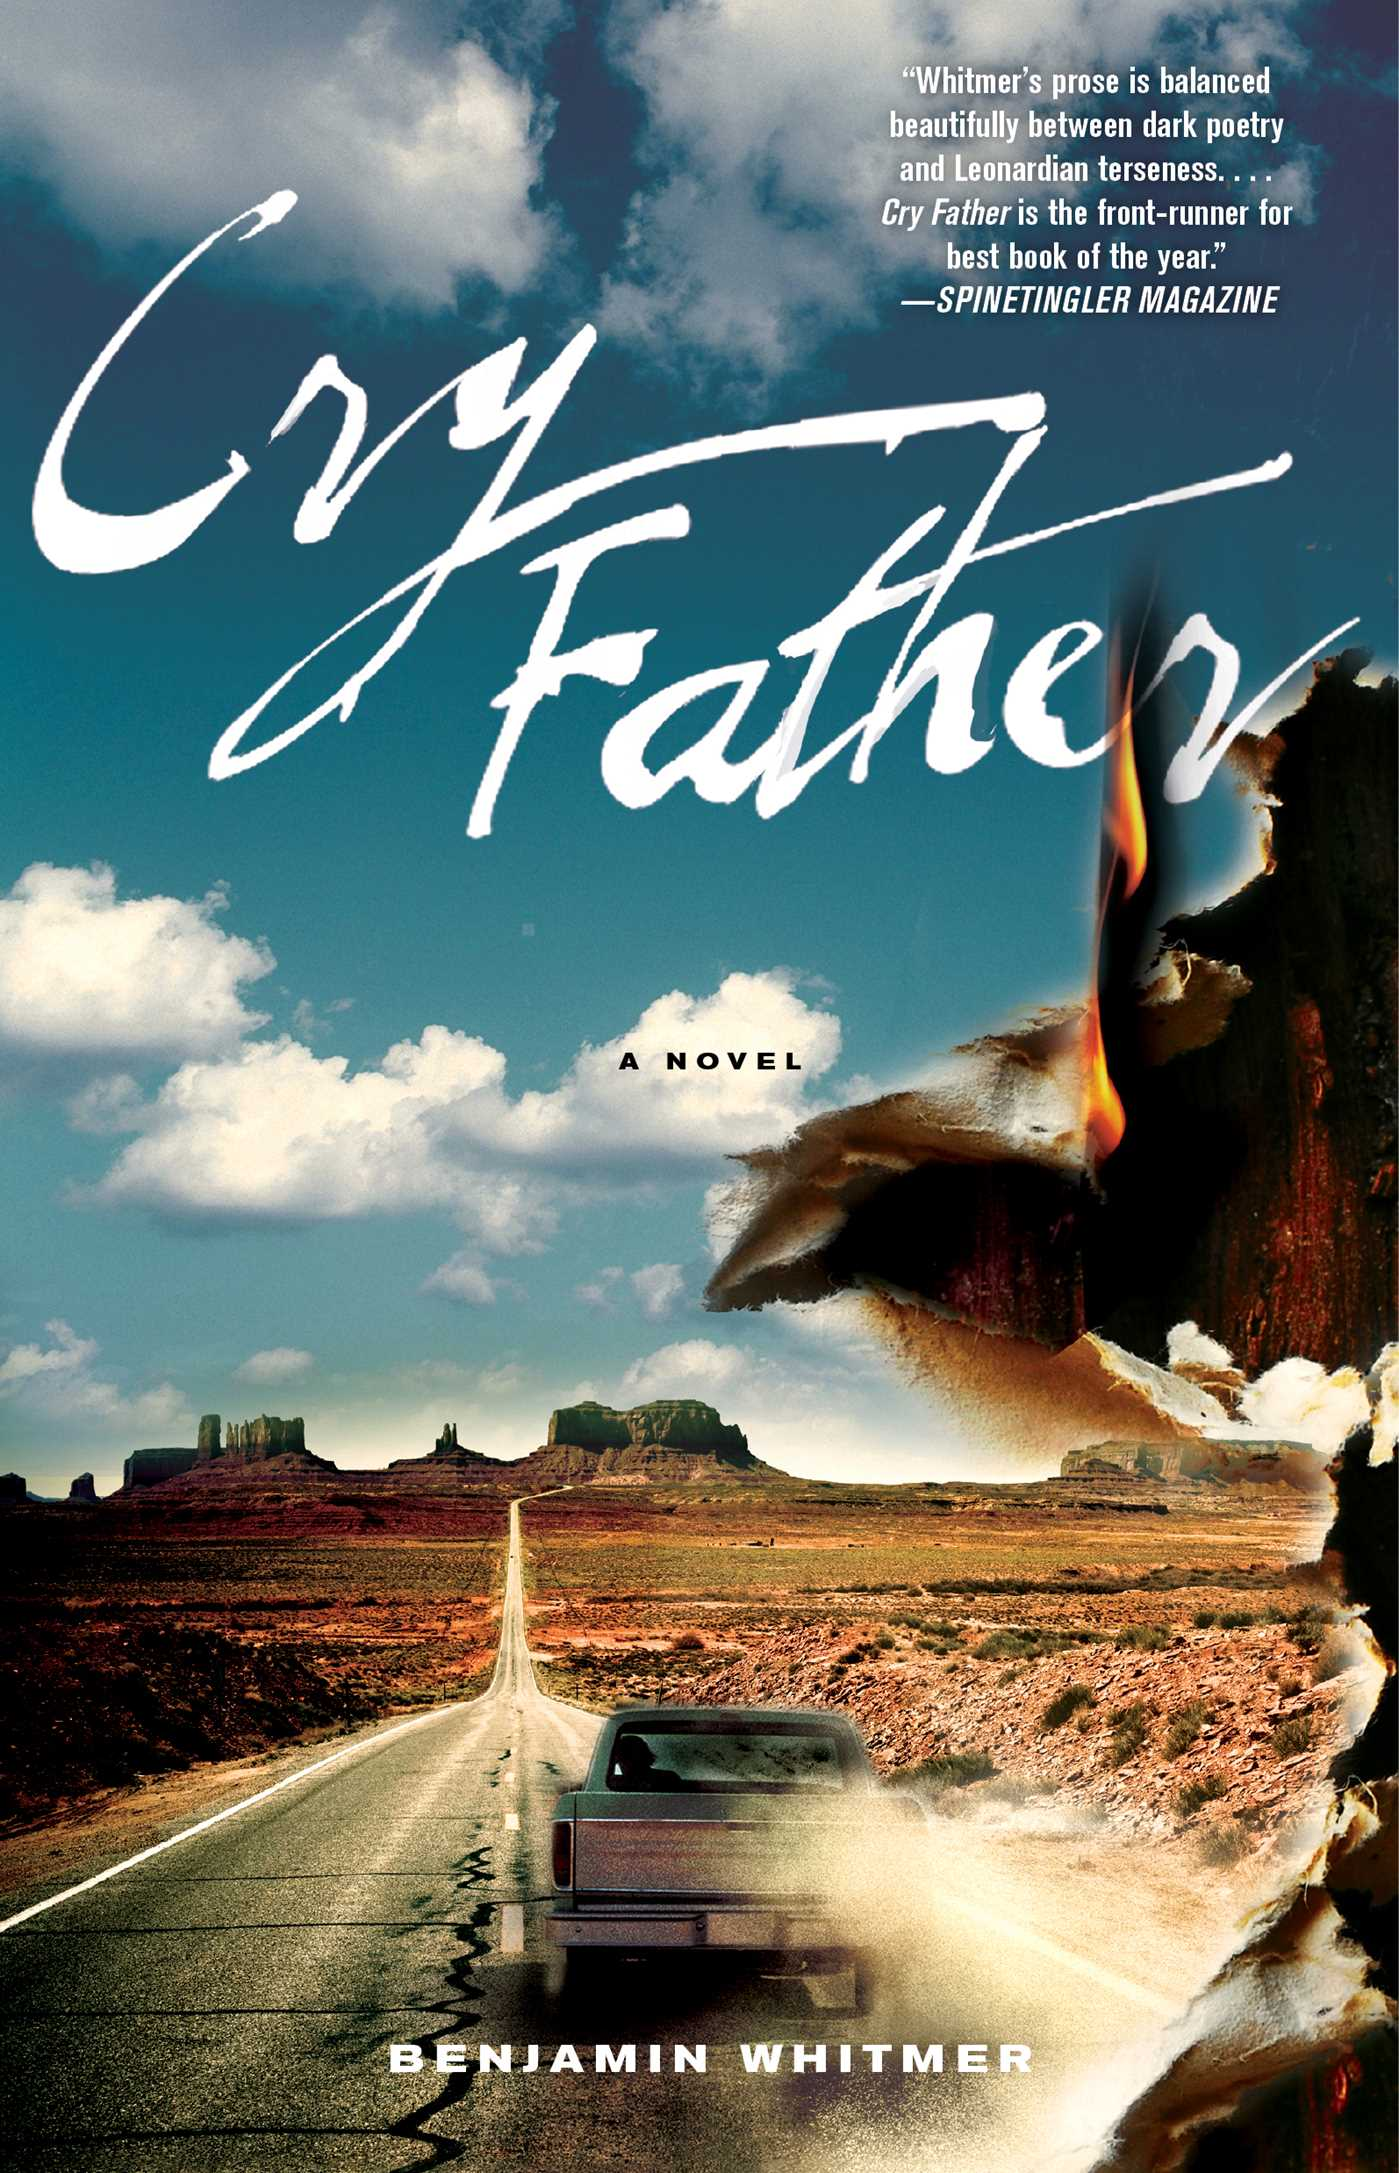 Cry father 9781476734361 hr